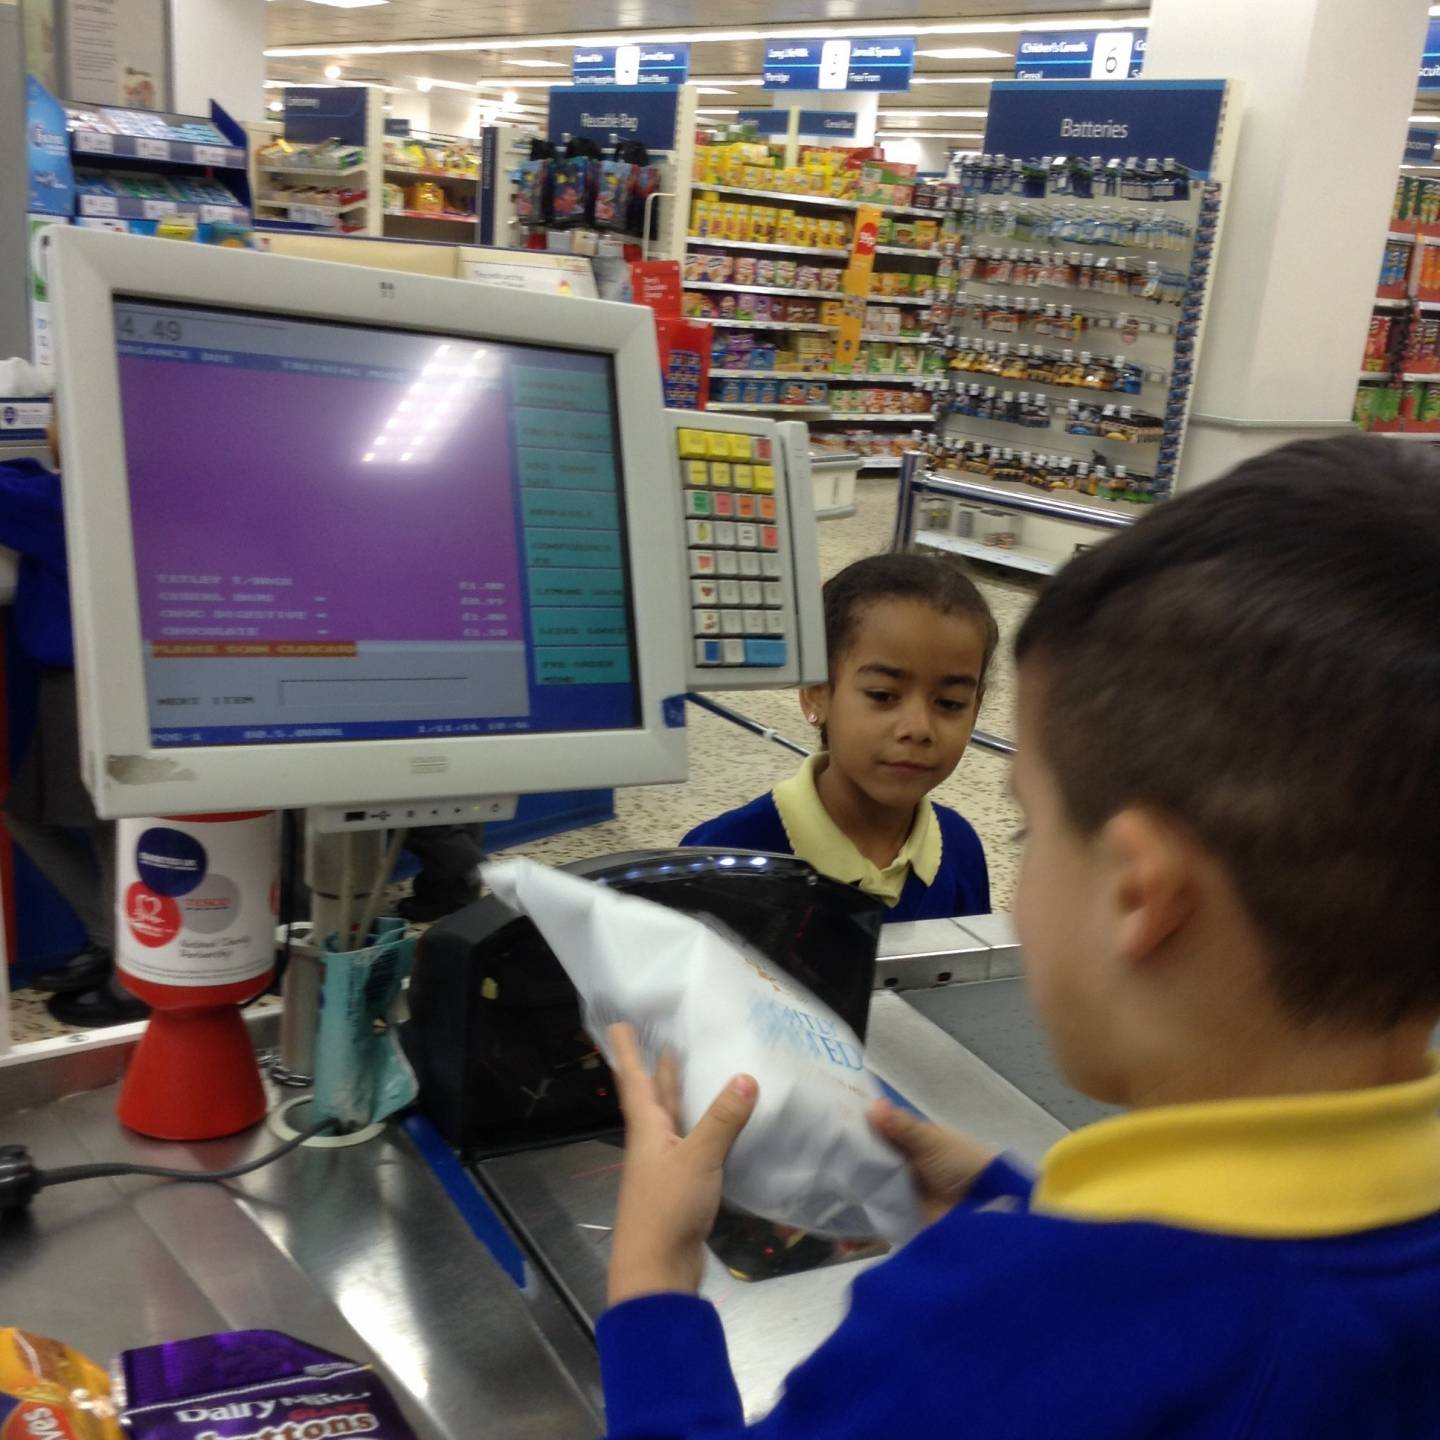 Tesco Checkout 6